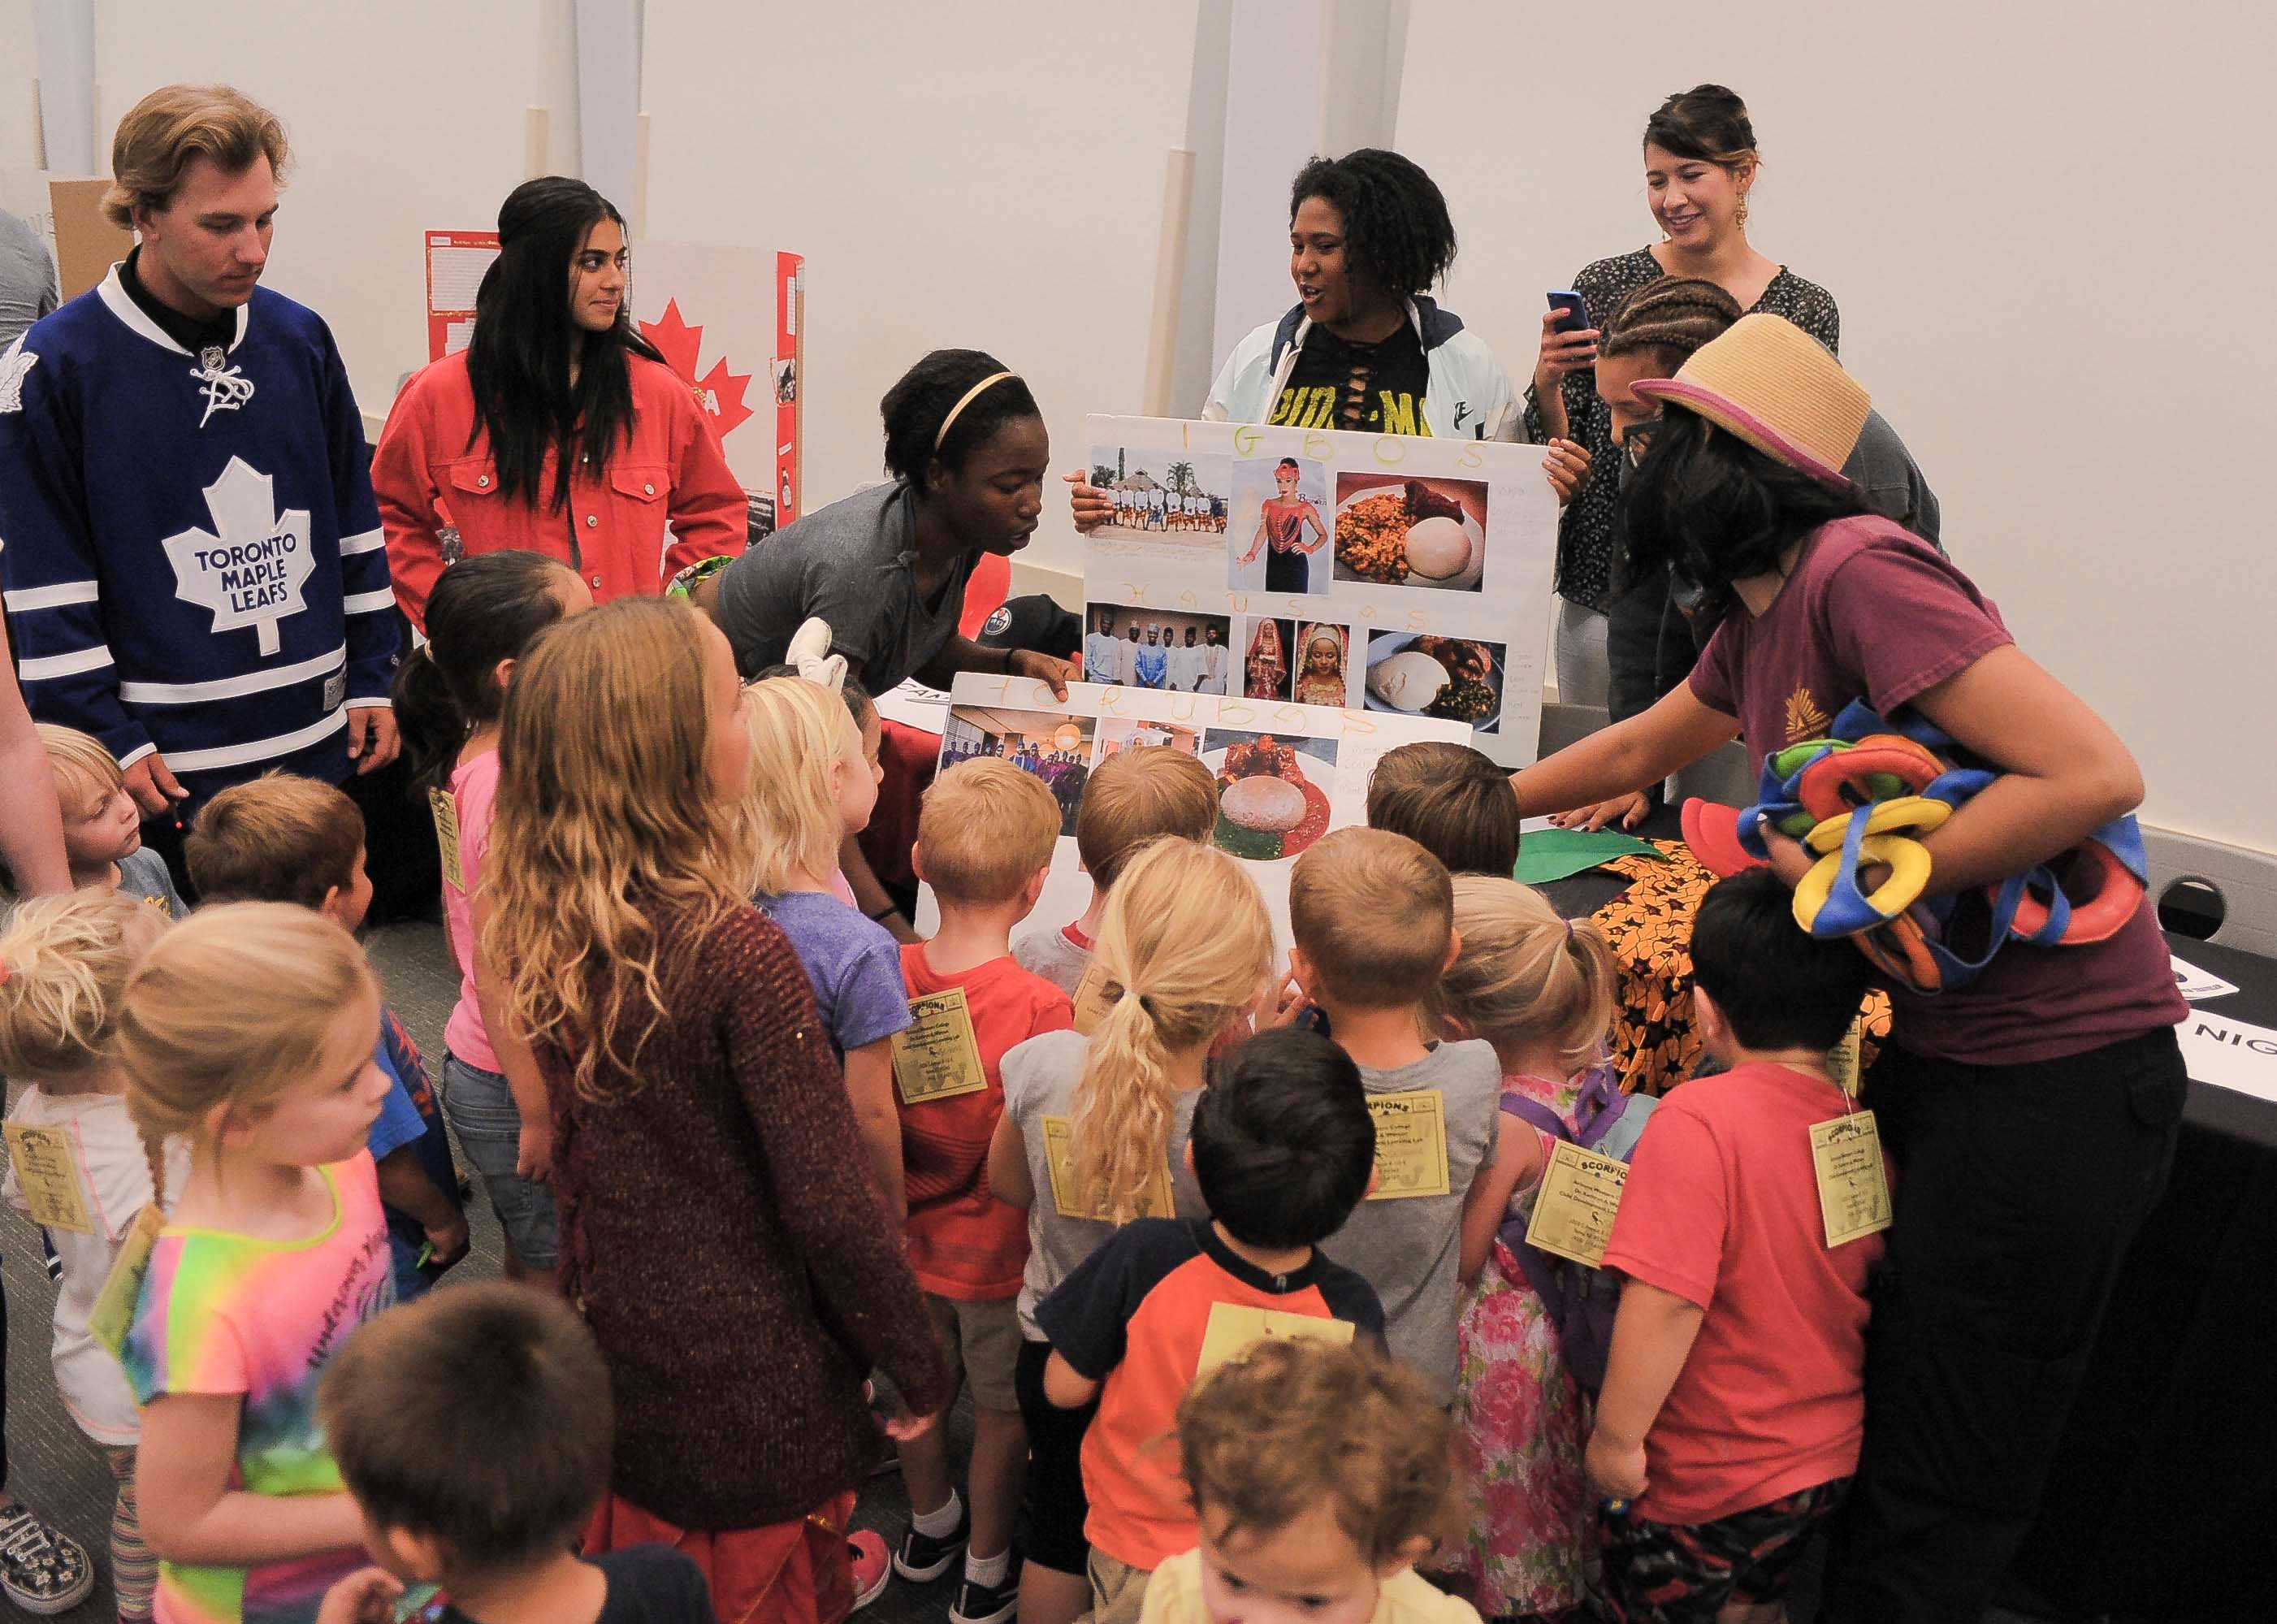 Young children are gathered around a display as AWC students explain various images.